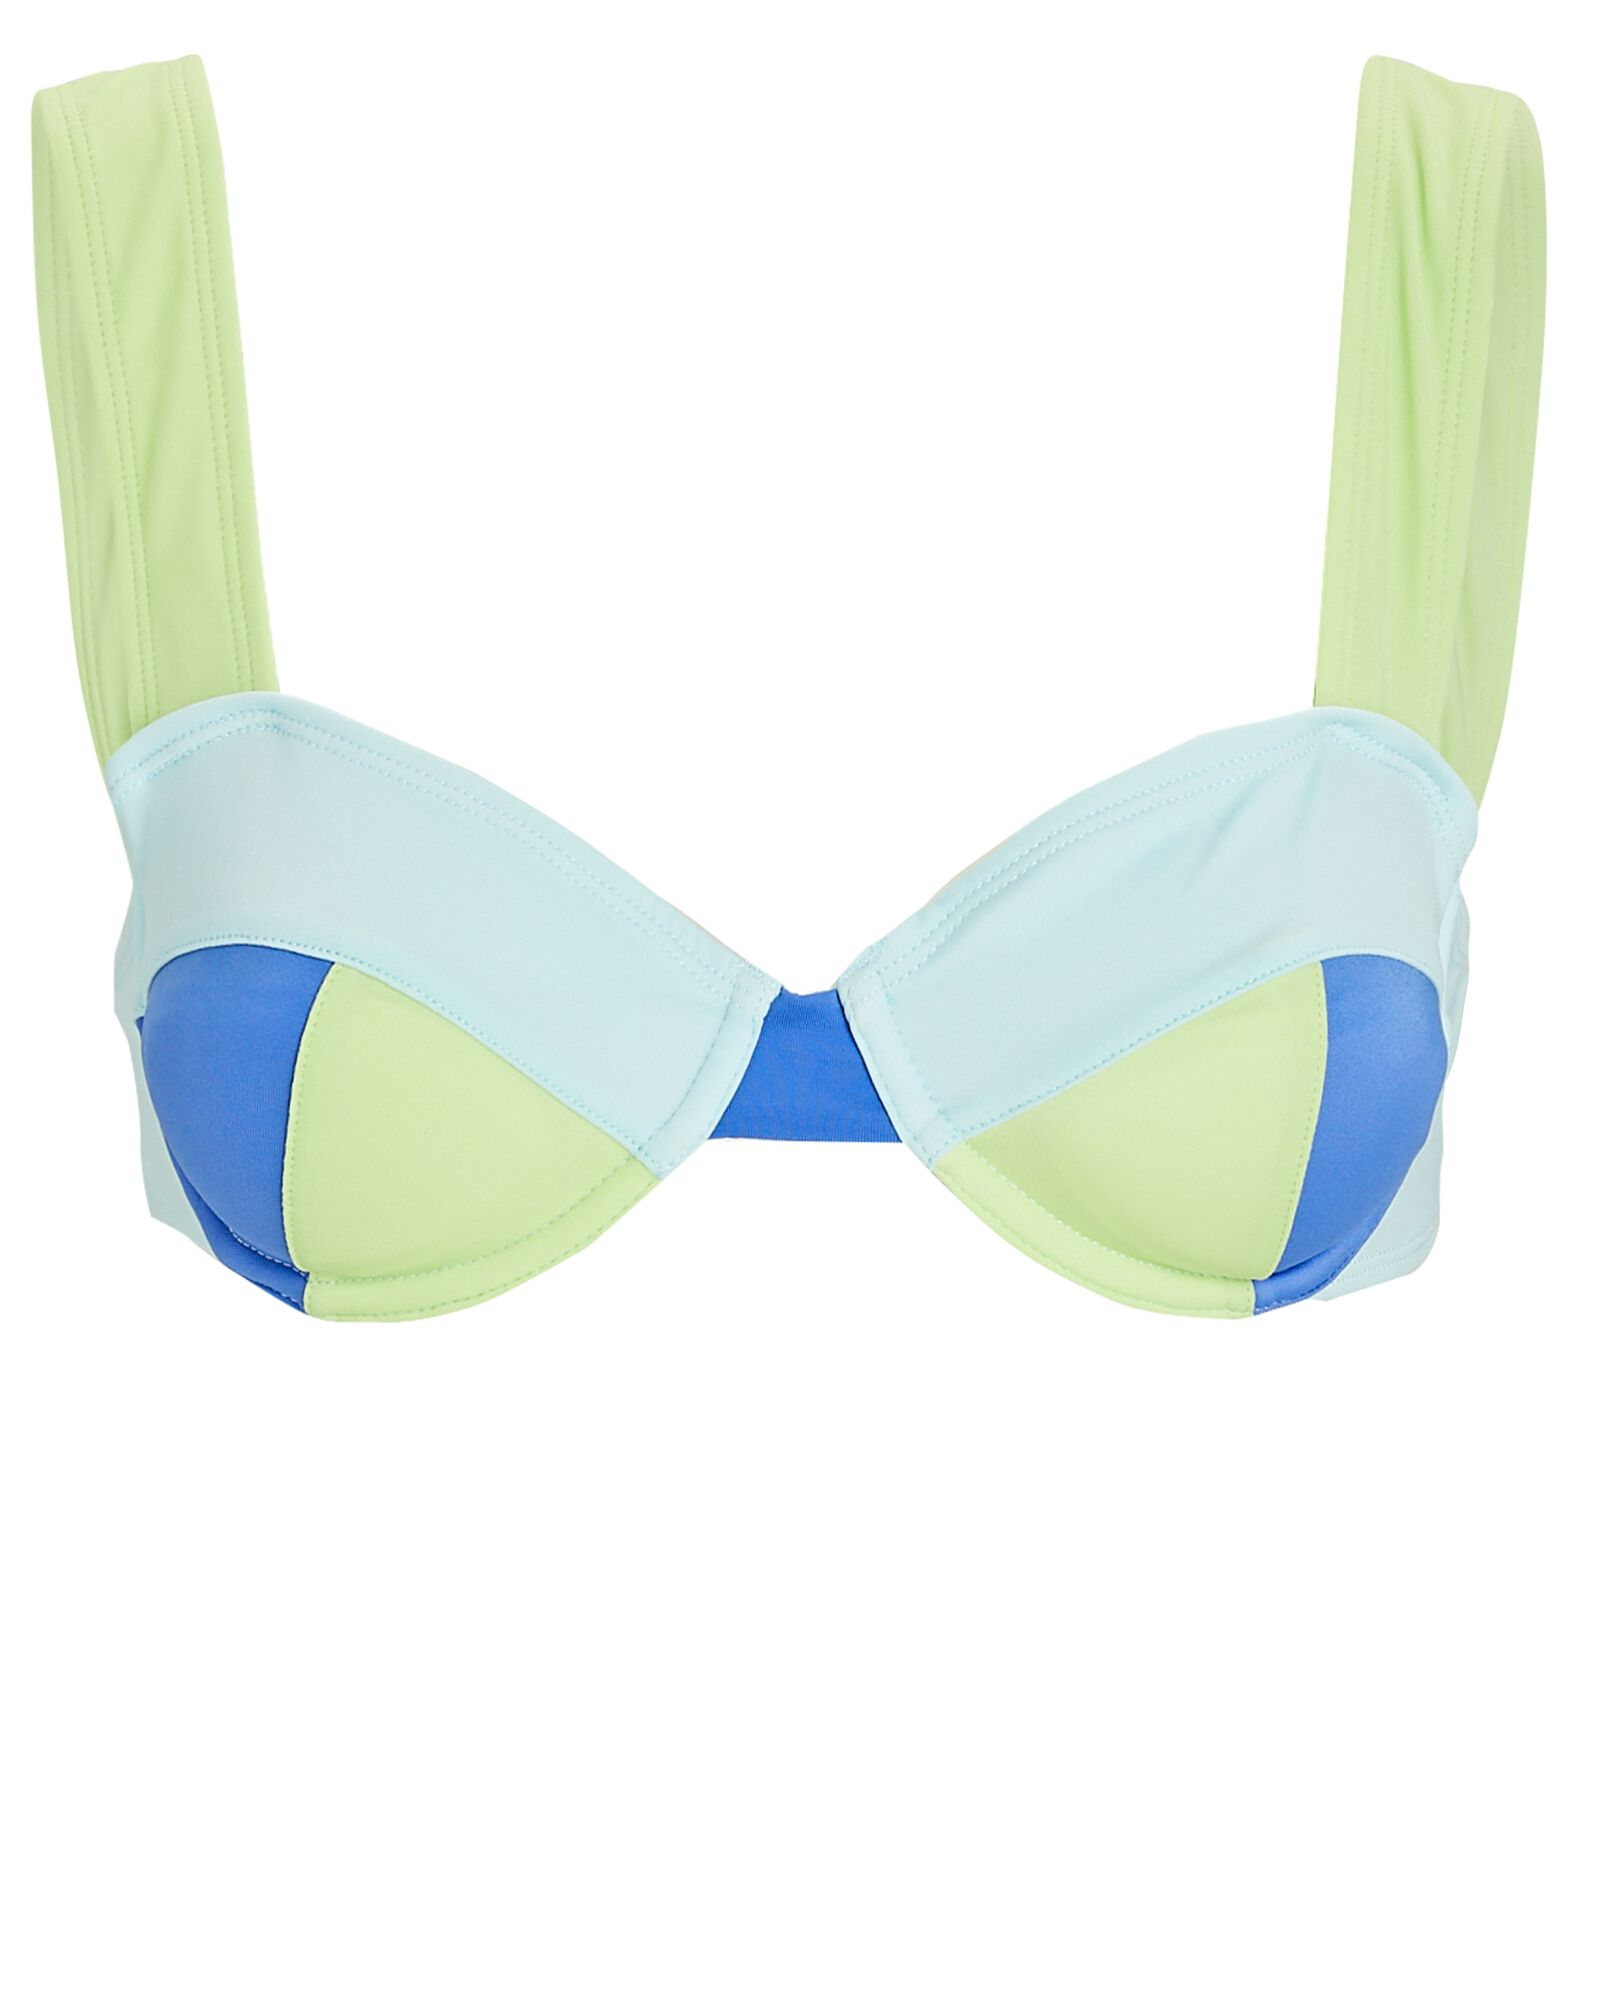 Lilo Colorblock Bikini Top, LIGHT GREEN/BLUE, hi-res